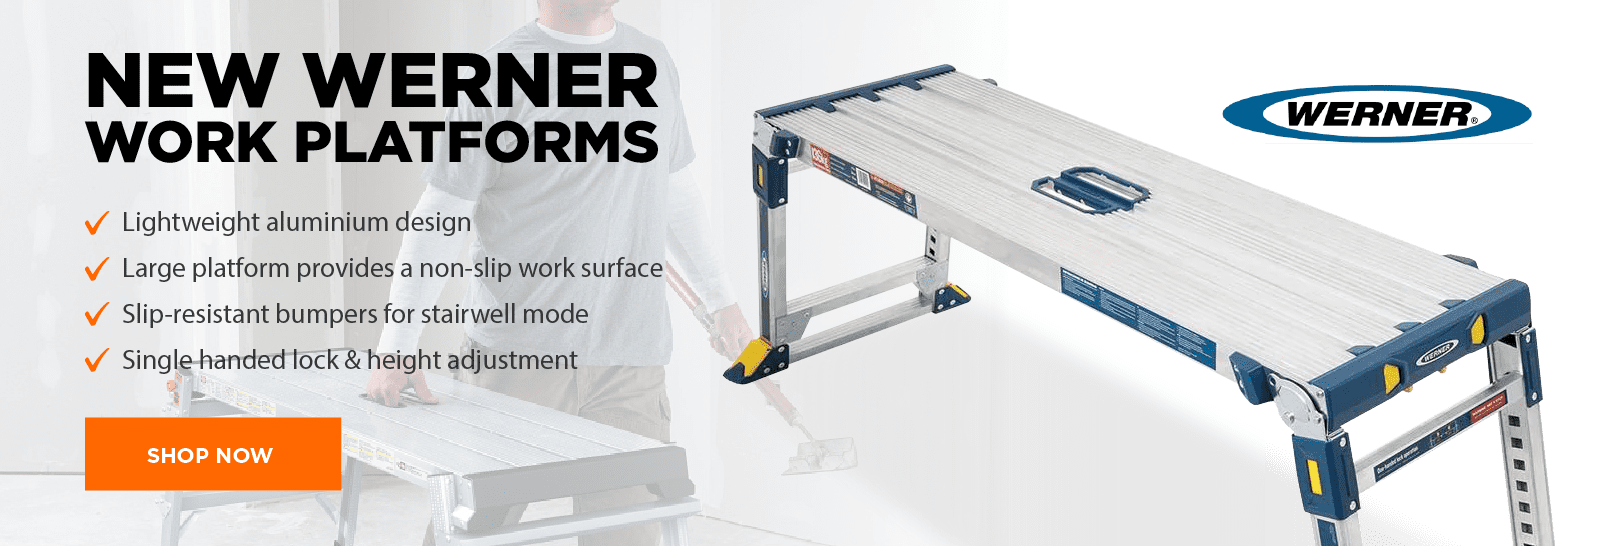 New Werner Work Platforms